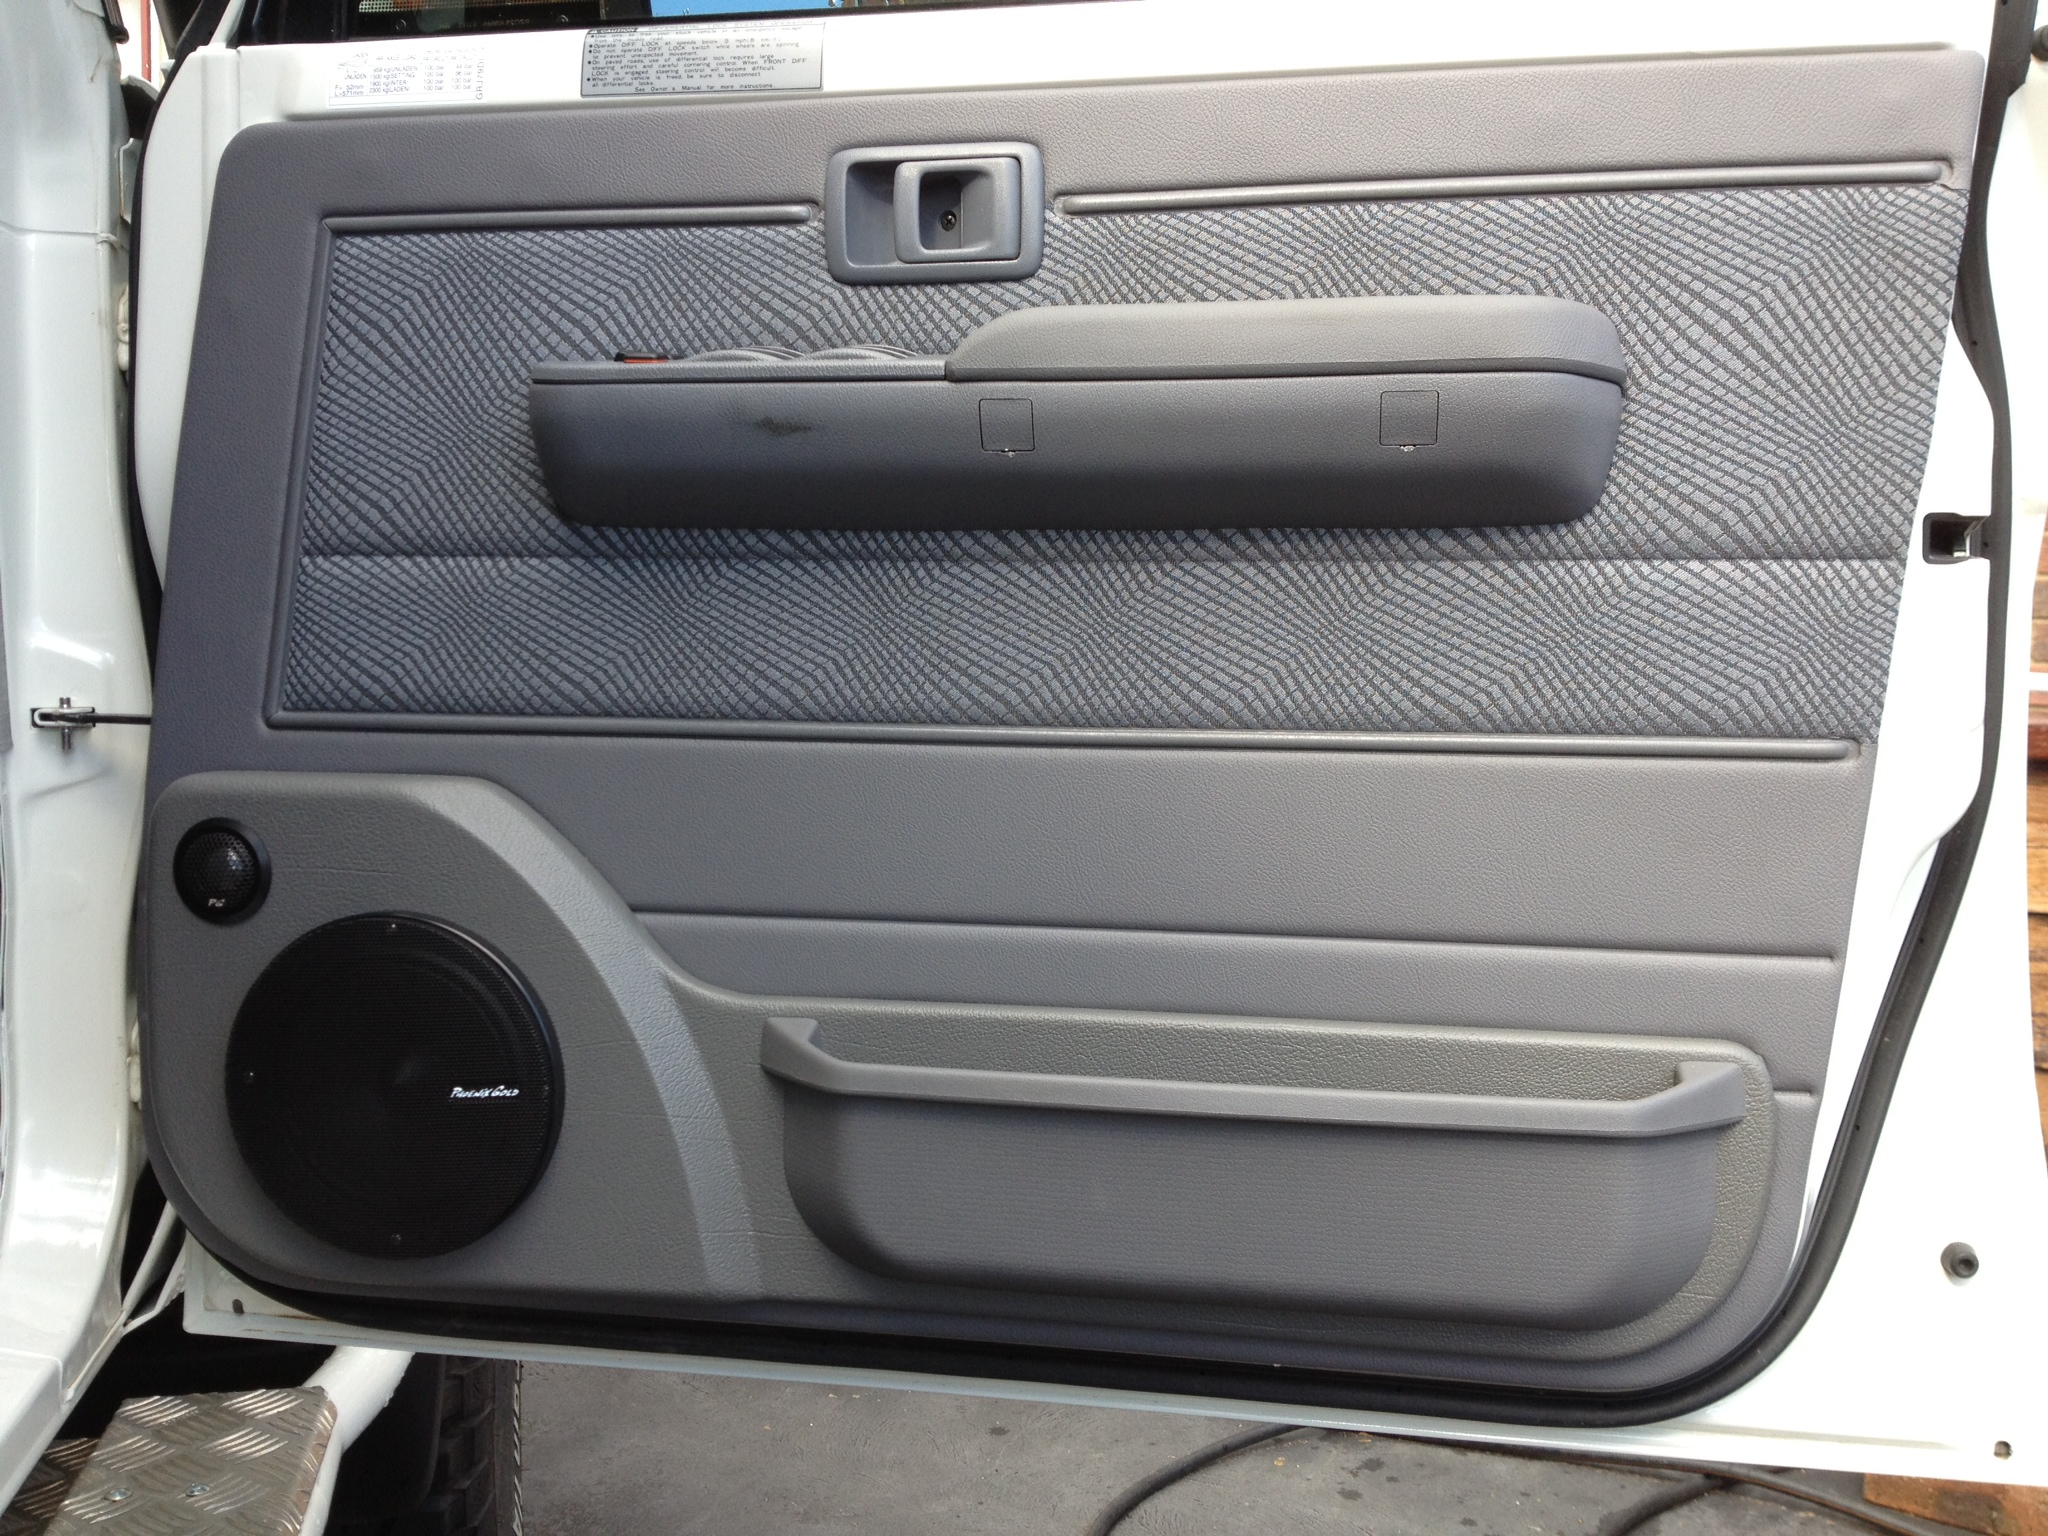 #786353   Cairns Customs   Car Sound Highly Rated 9379 Air Conditioning Units Cairns wallpapers with 2048x1536 px on helpvideos.info - Air Conditioners, Air Coolers and more